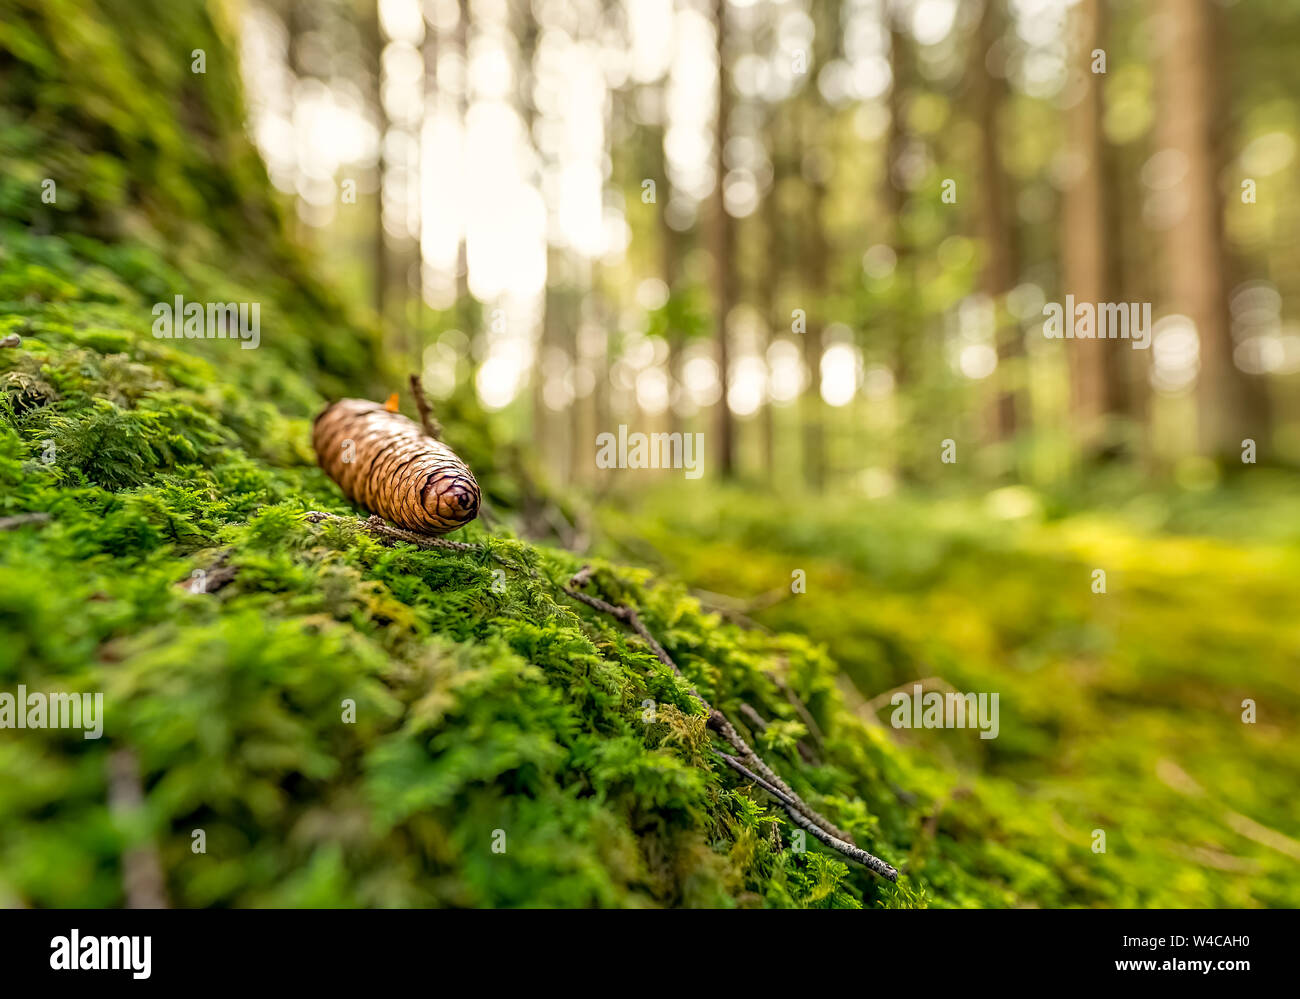 Green mossy forest with a pinecone in focus. Stock Photo